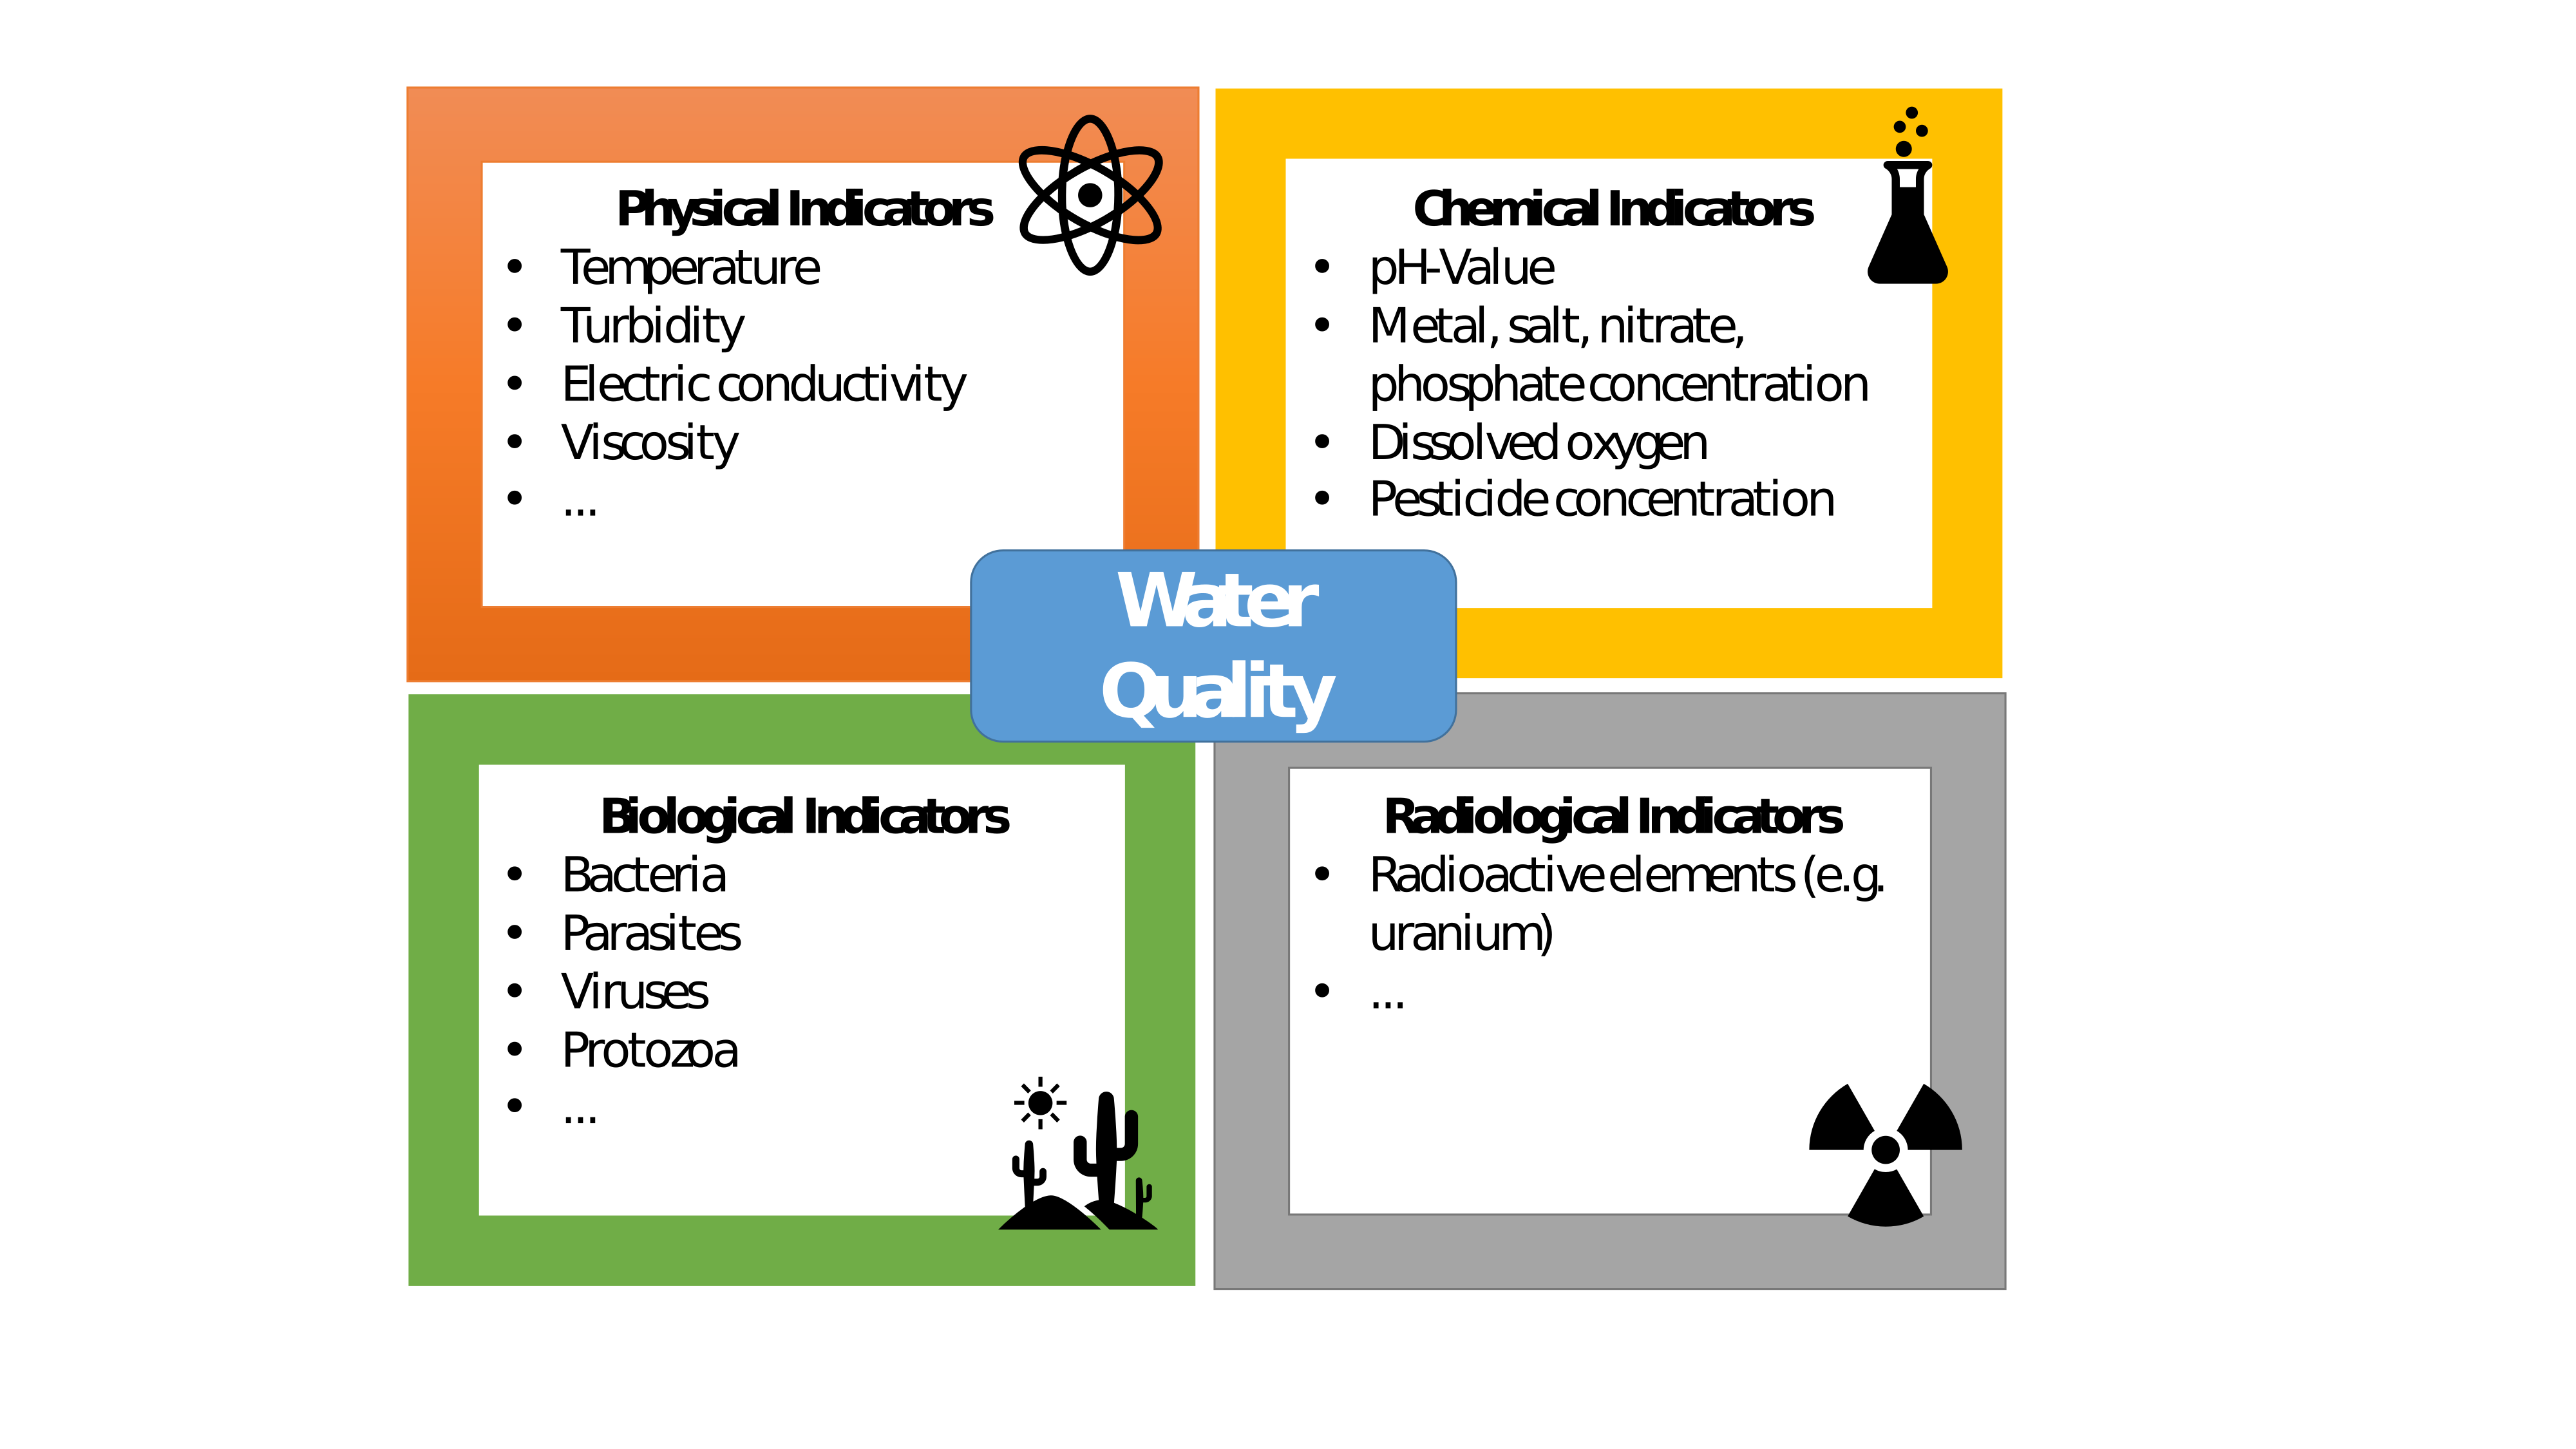 Figure 1: Overview of water quality indicators